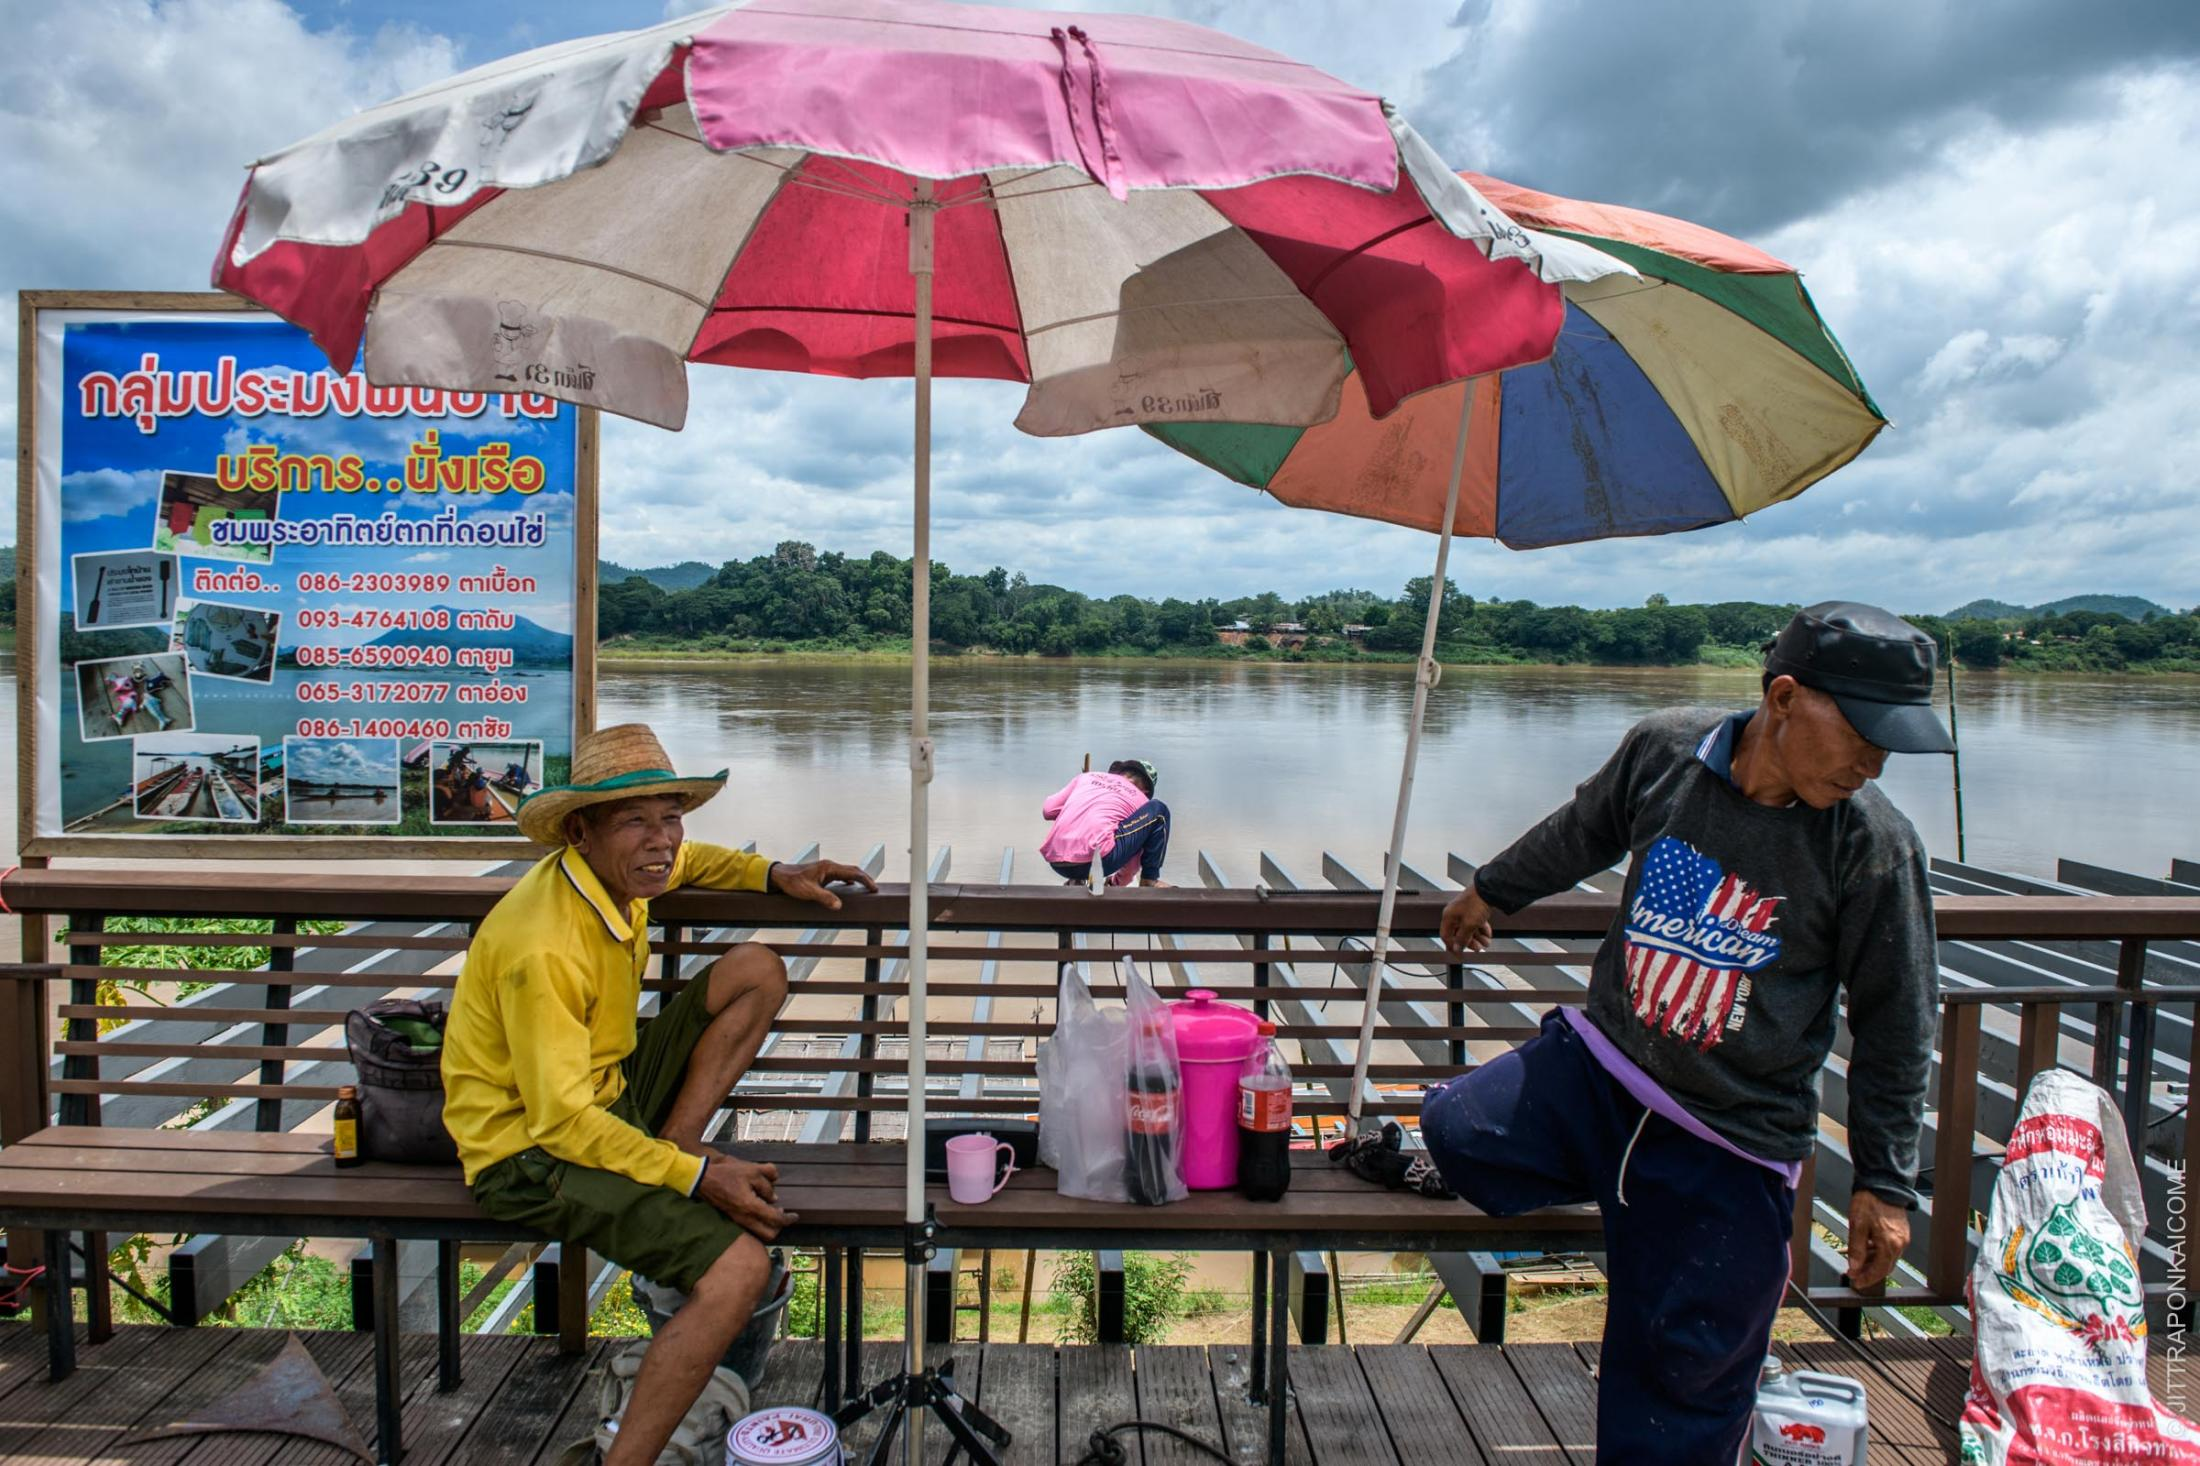 Fishermen are building a public viewpoint space on the Mekong riverbank to accommodate tourists. Chiang Khan, Loei, Thailand – August 2020.